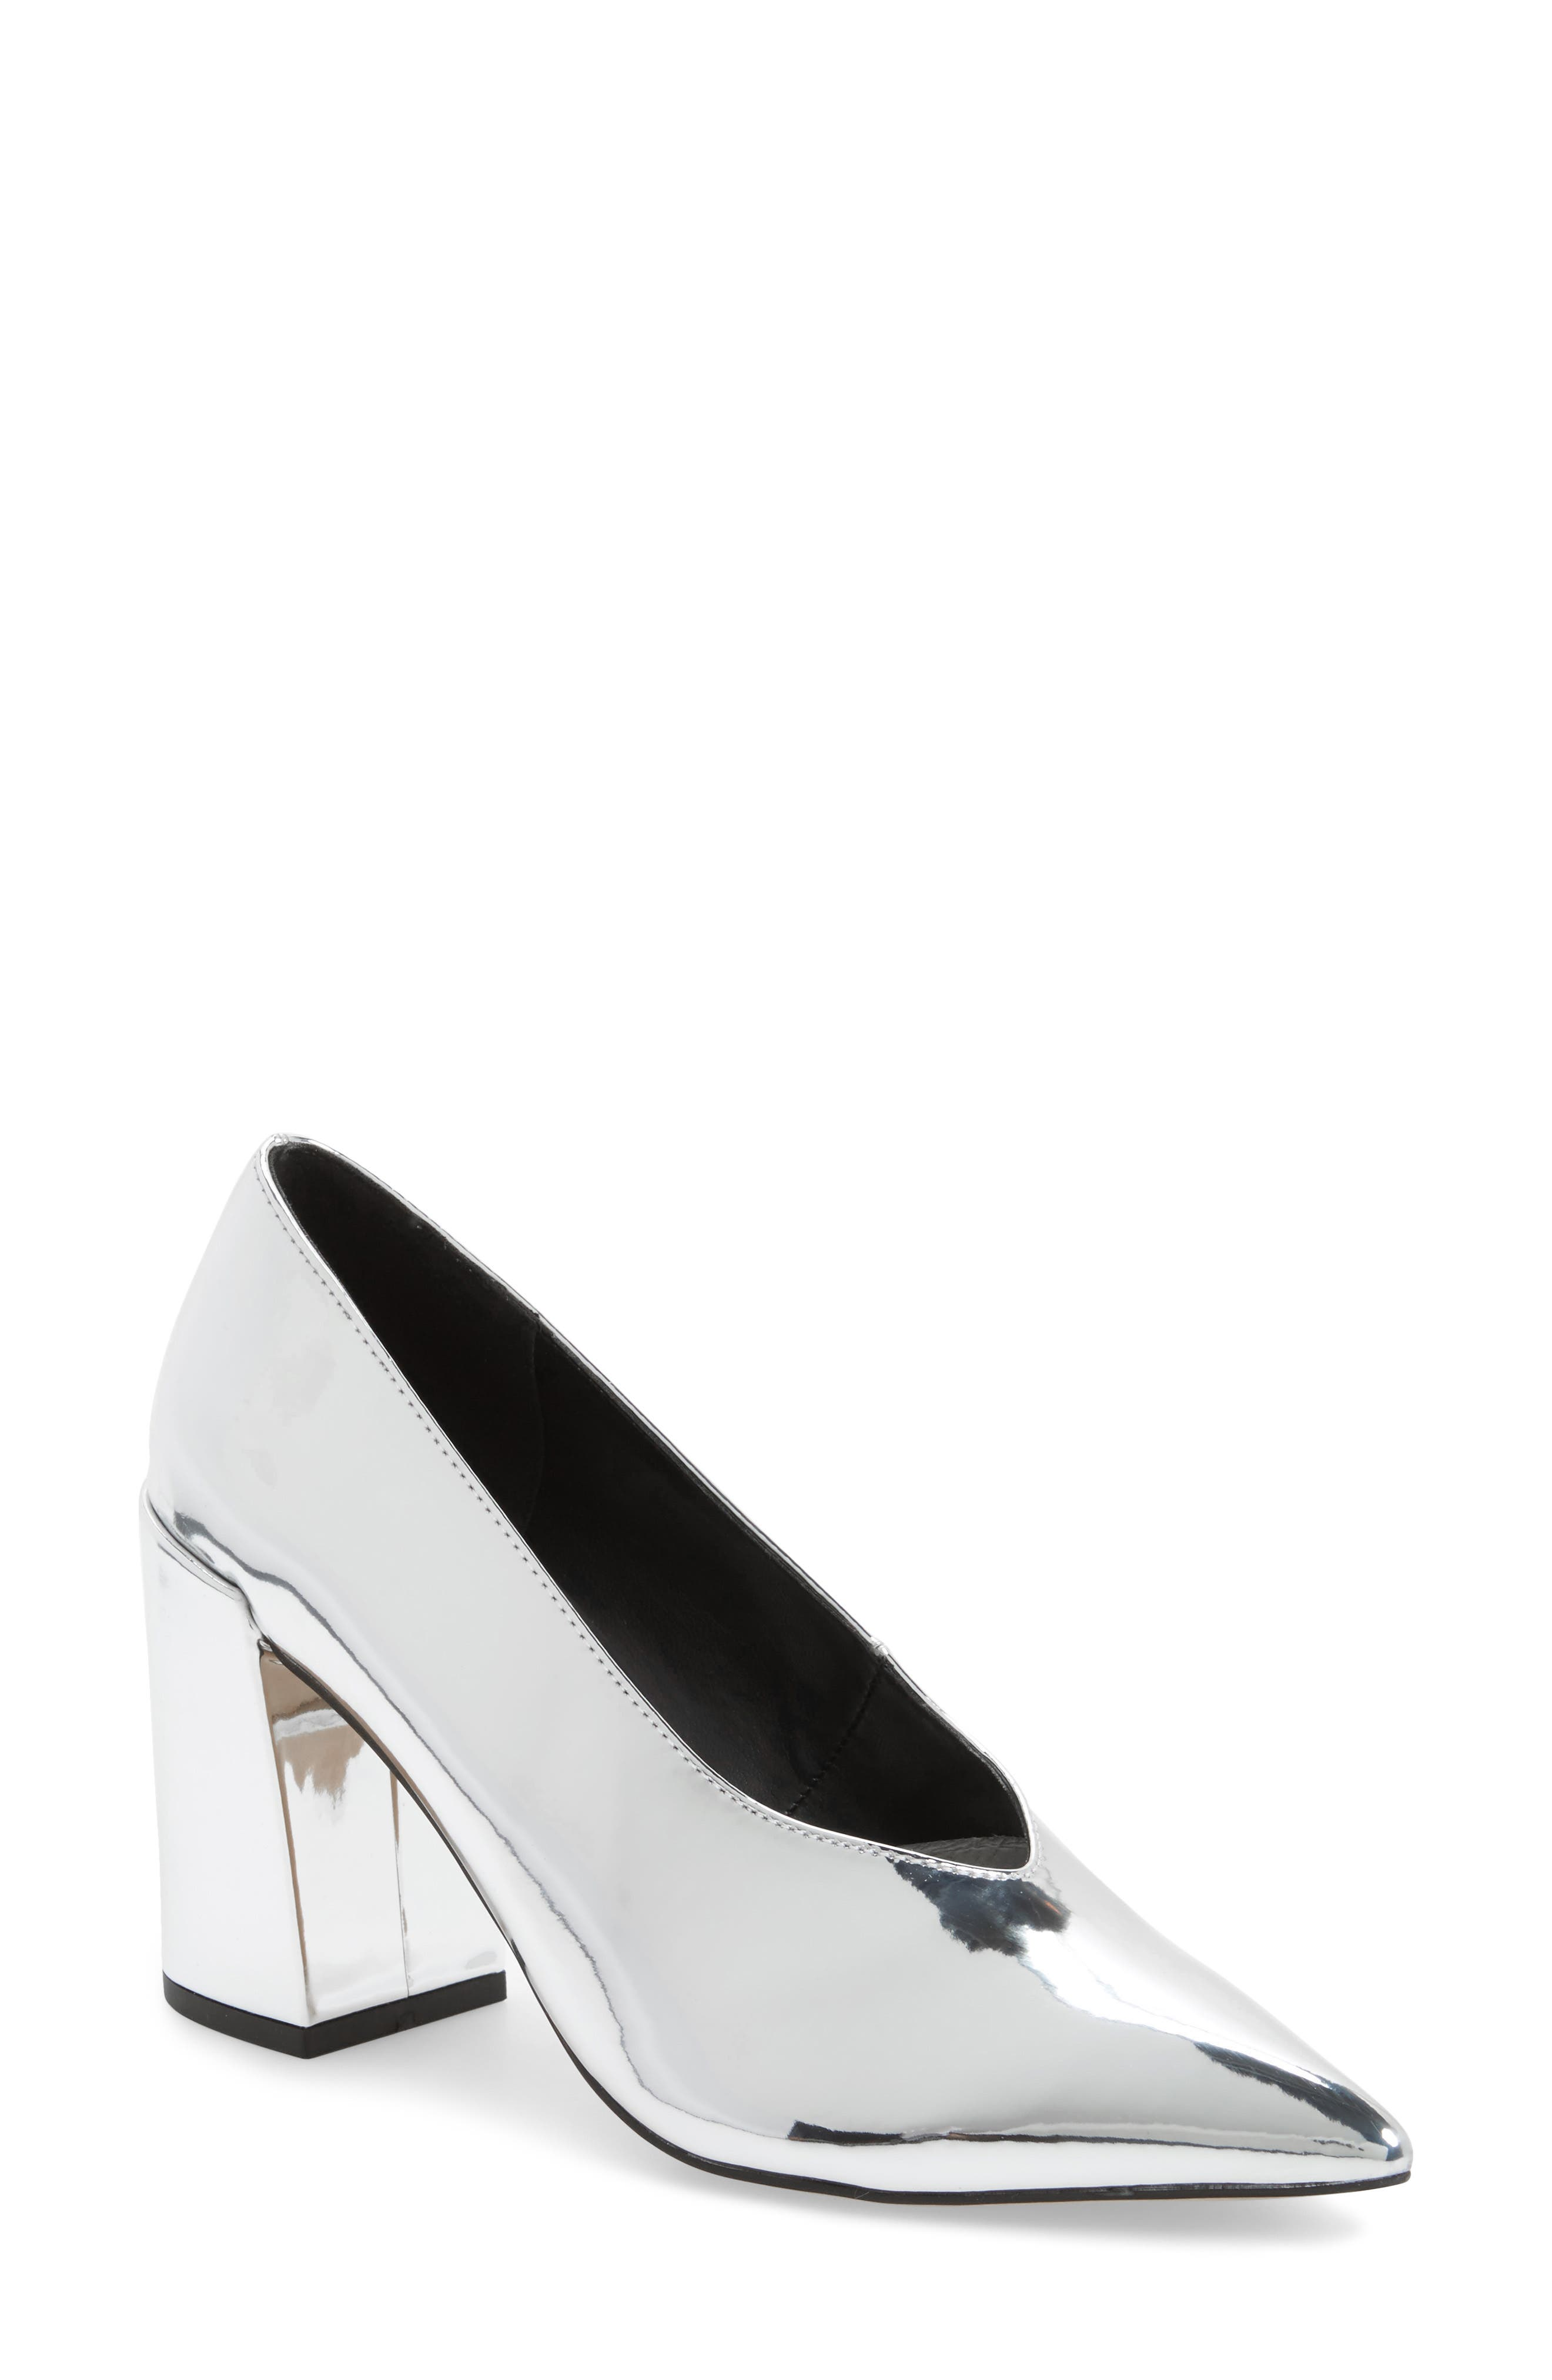 Alternate Image 1 Selected - Topshop Greatal Pointy Toe Pump (Women)